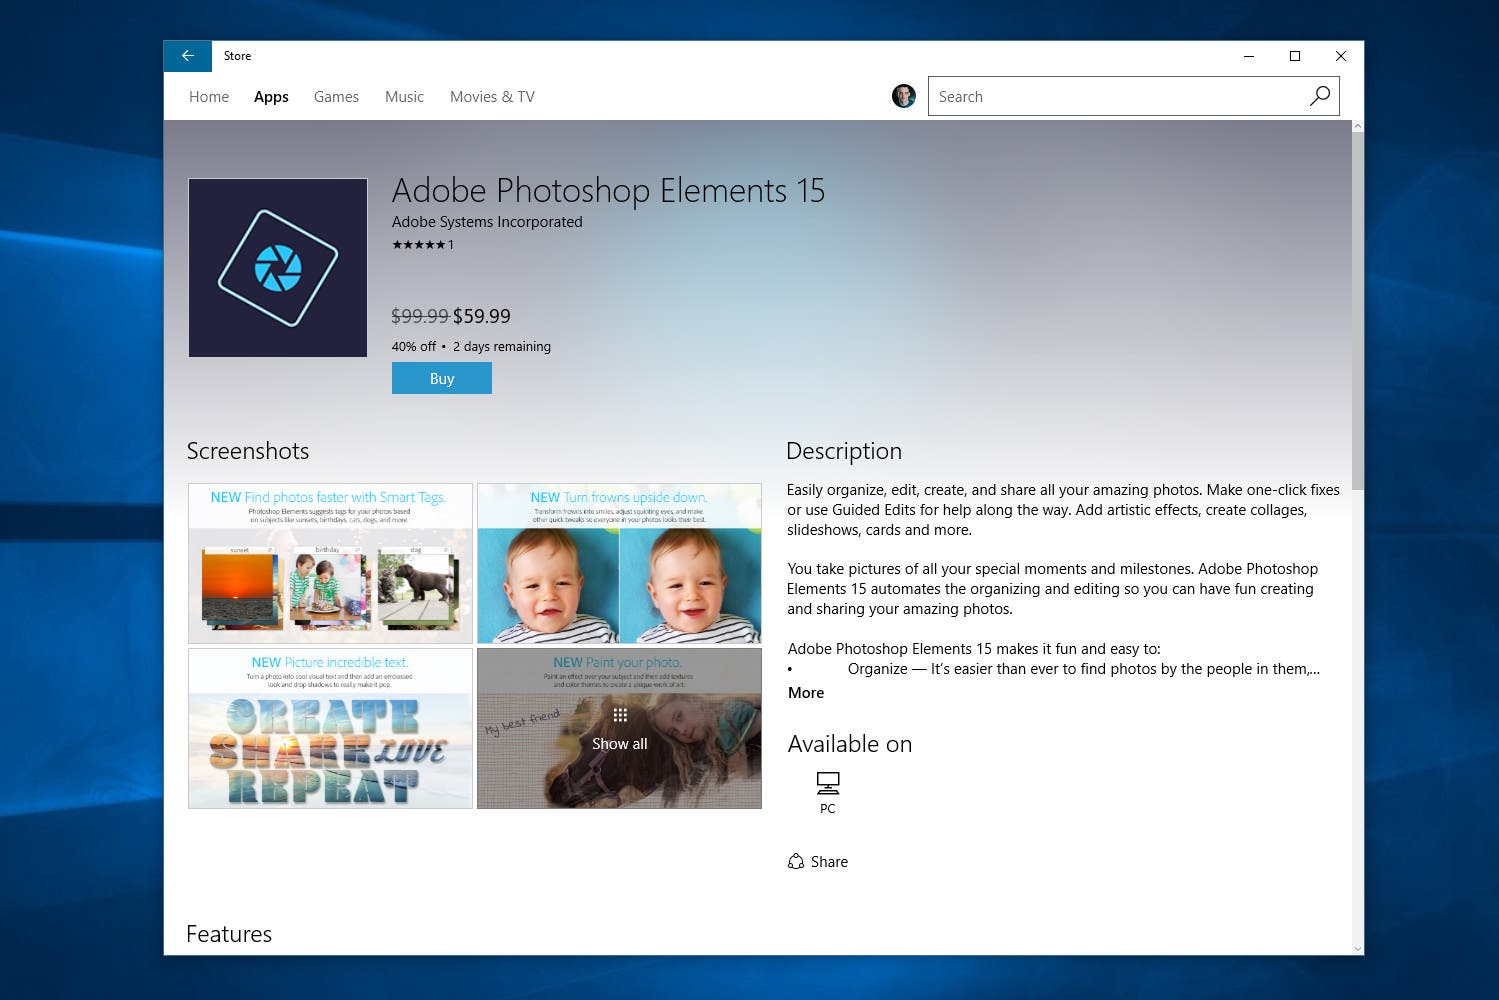 You Can Now Get Adobe Photoshop Elements 15 In The Windows Store